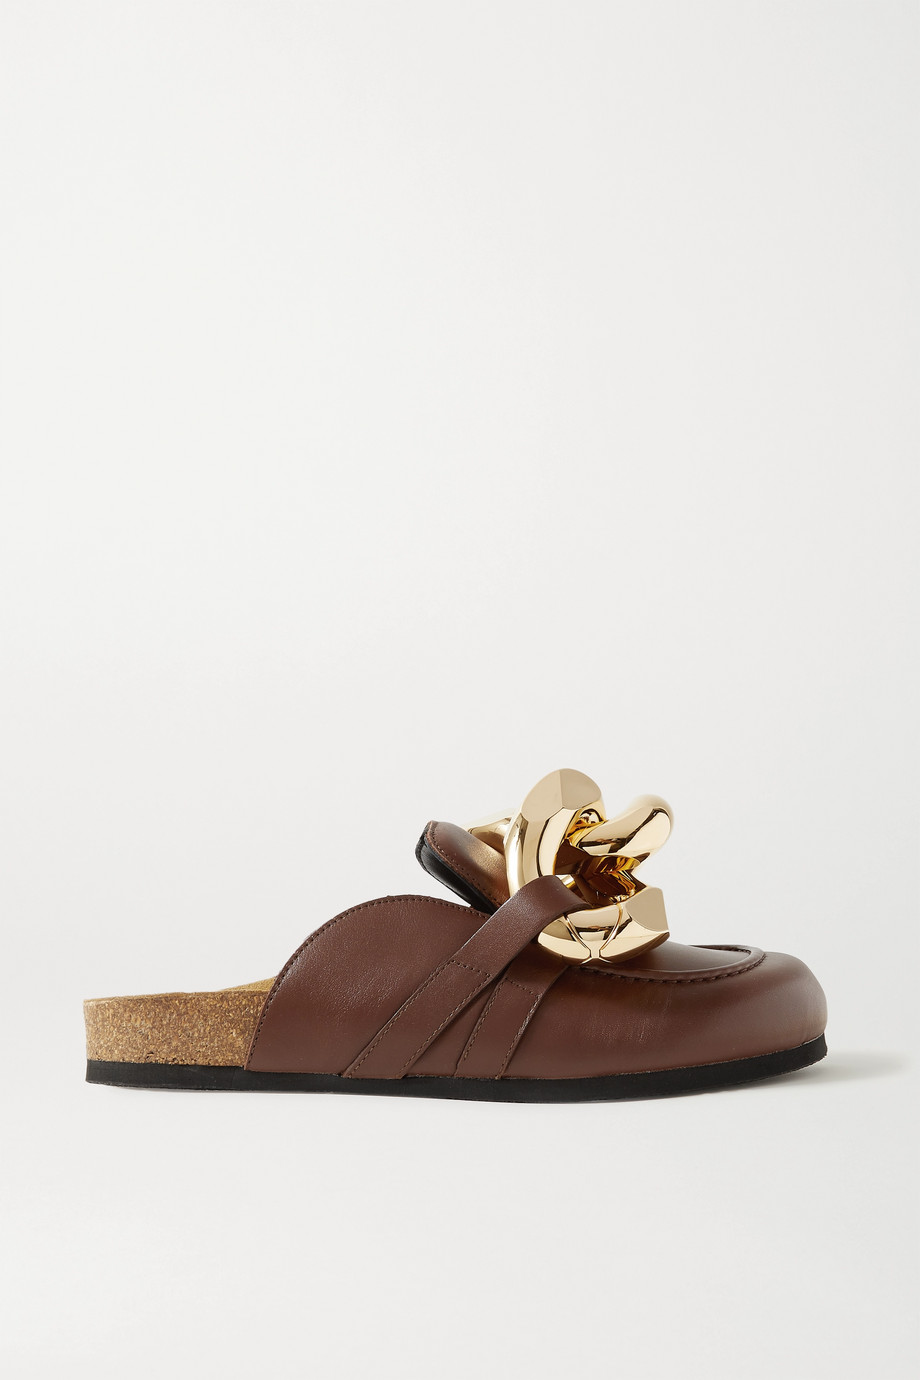 JW ANDERSON Chain-embellished leather slippers